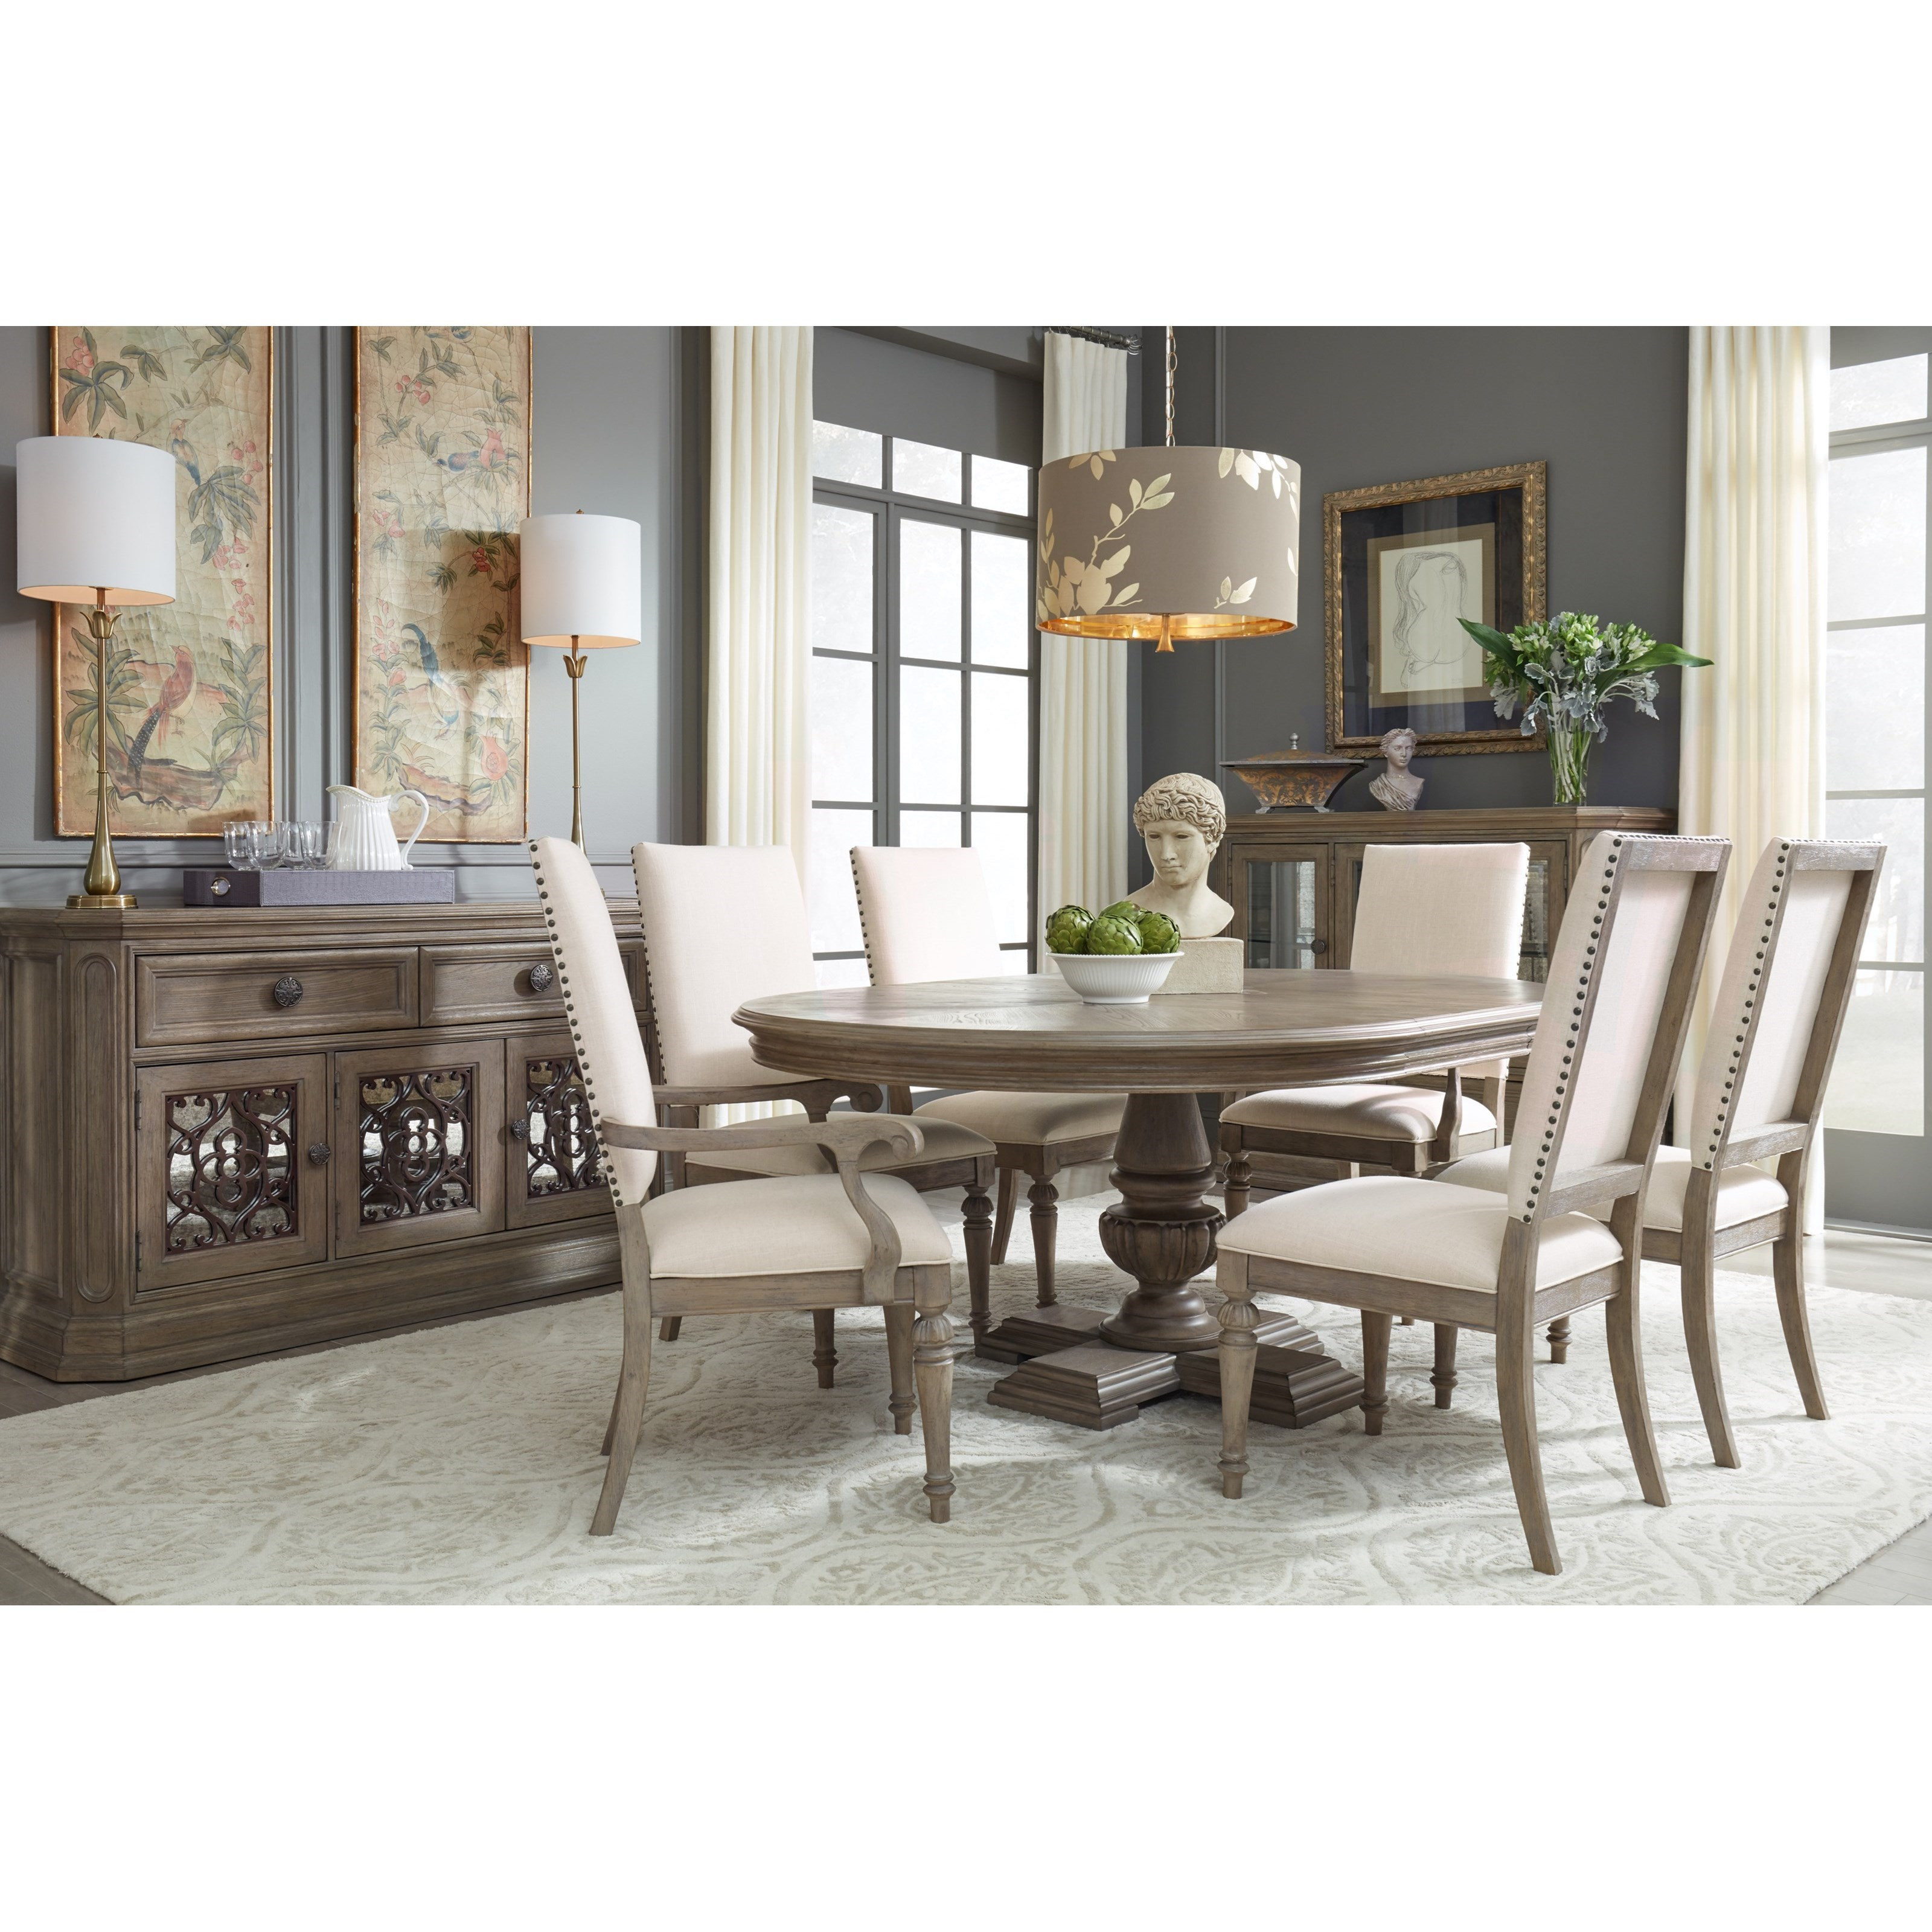 Formal Dining Room Furniture Manufacturers: Legacy Classic Manor House Formal Dining Group